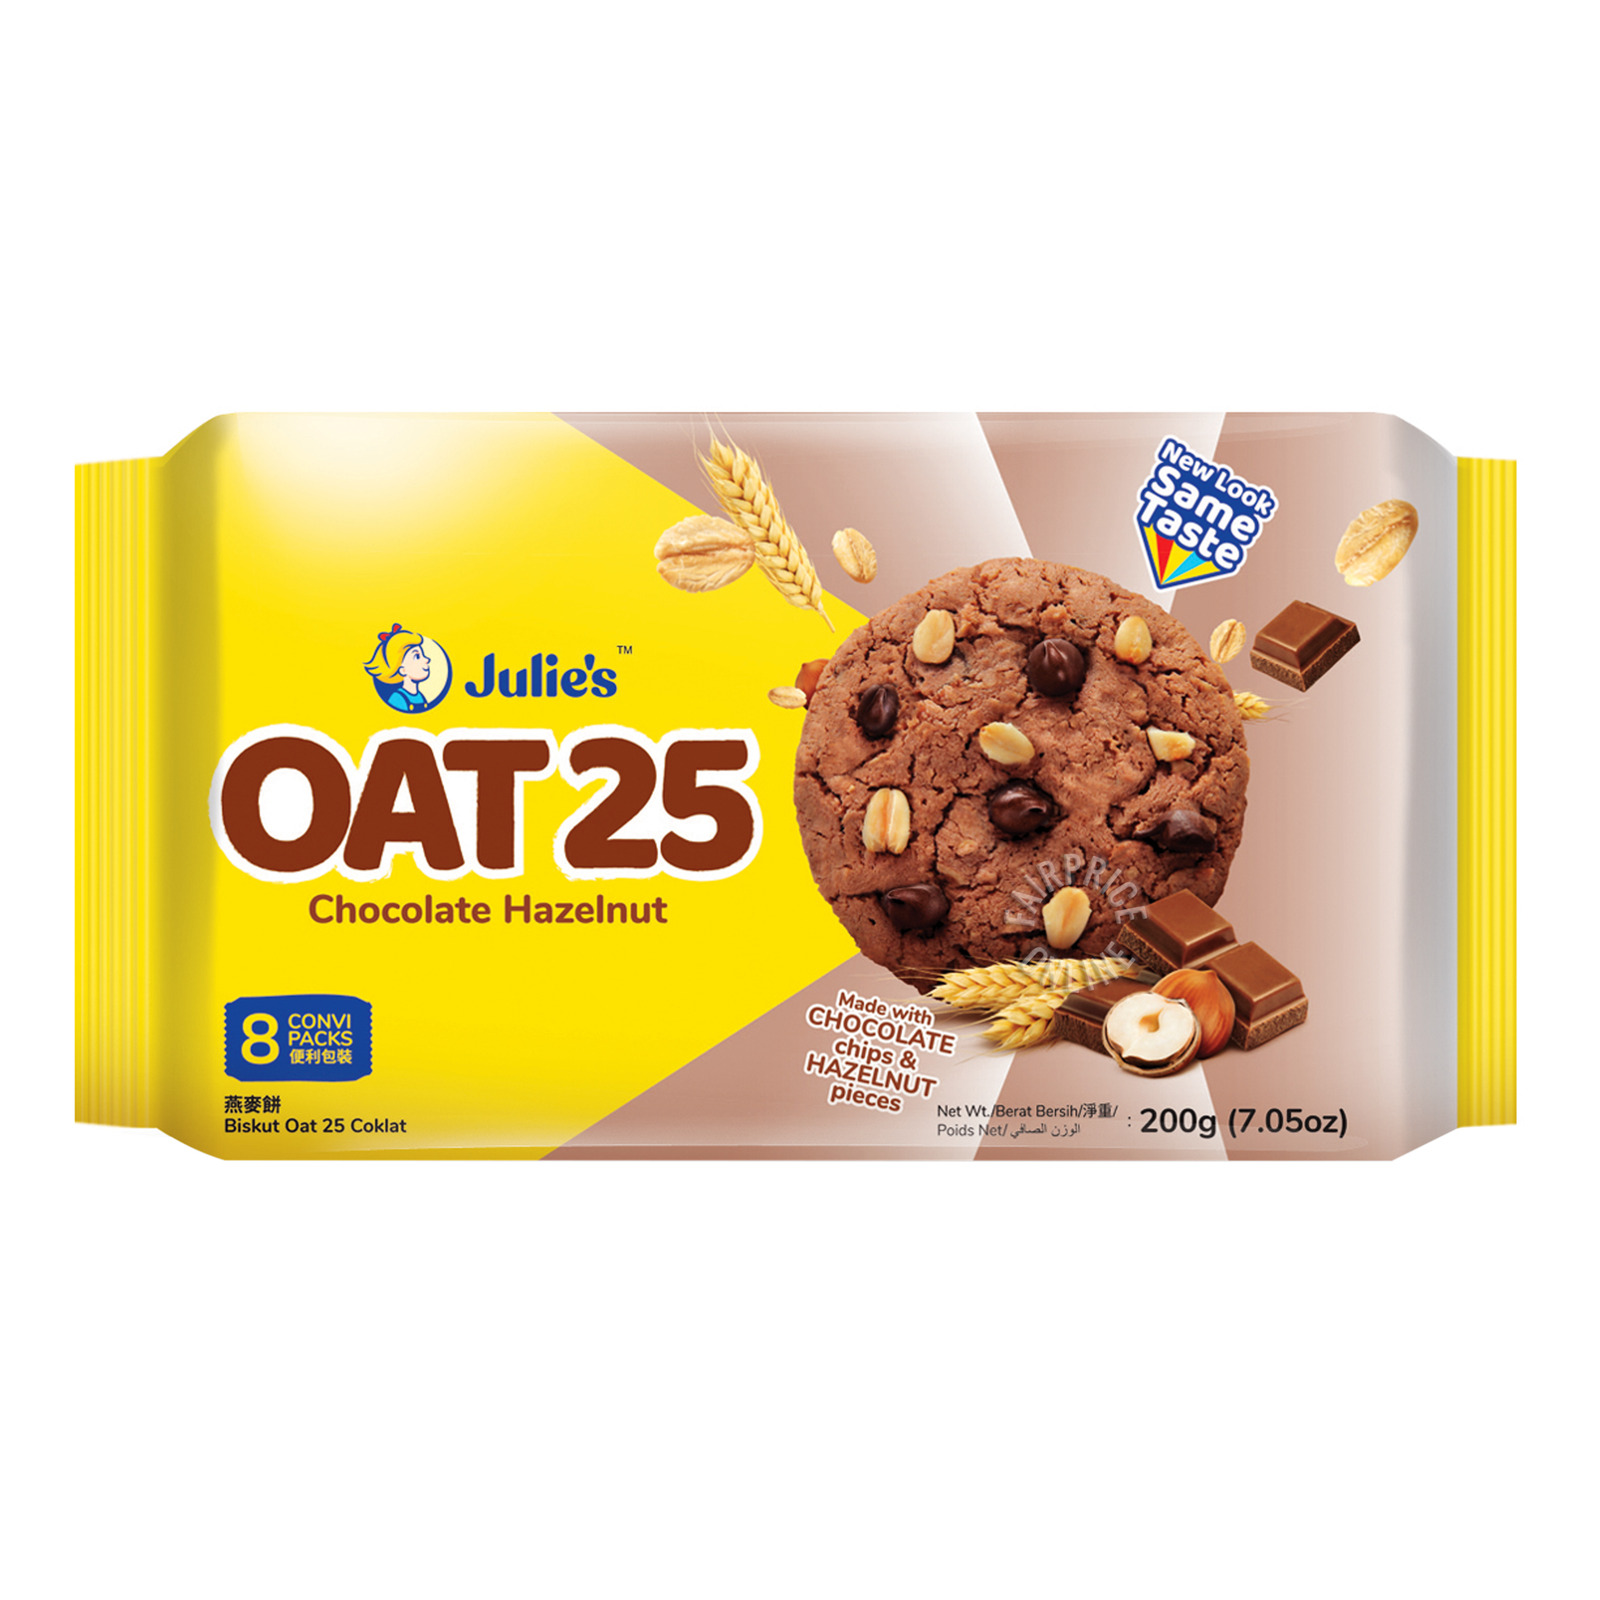 Julie's Oat 25 Cookies - Hazelnuts & Chocolate Chips